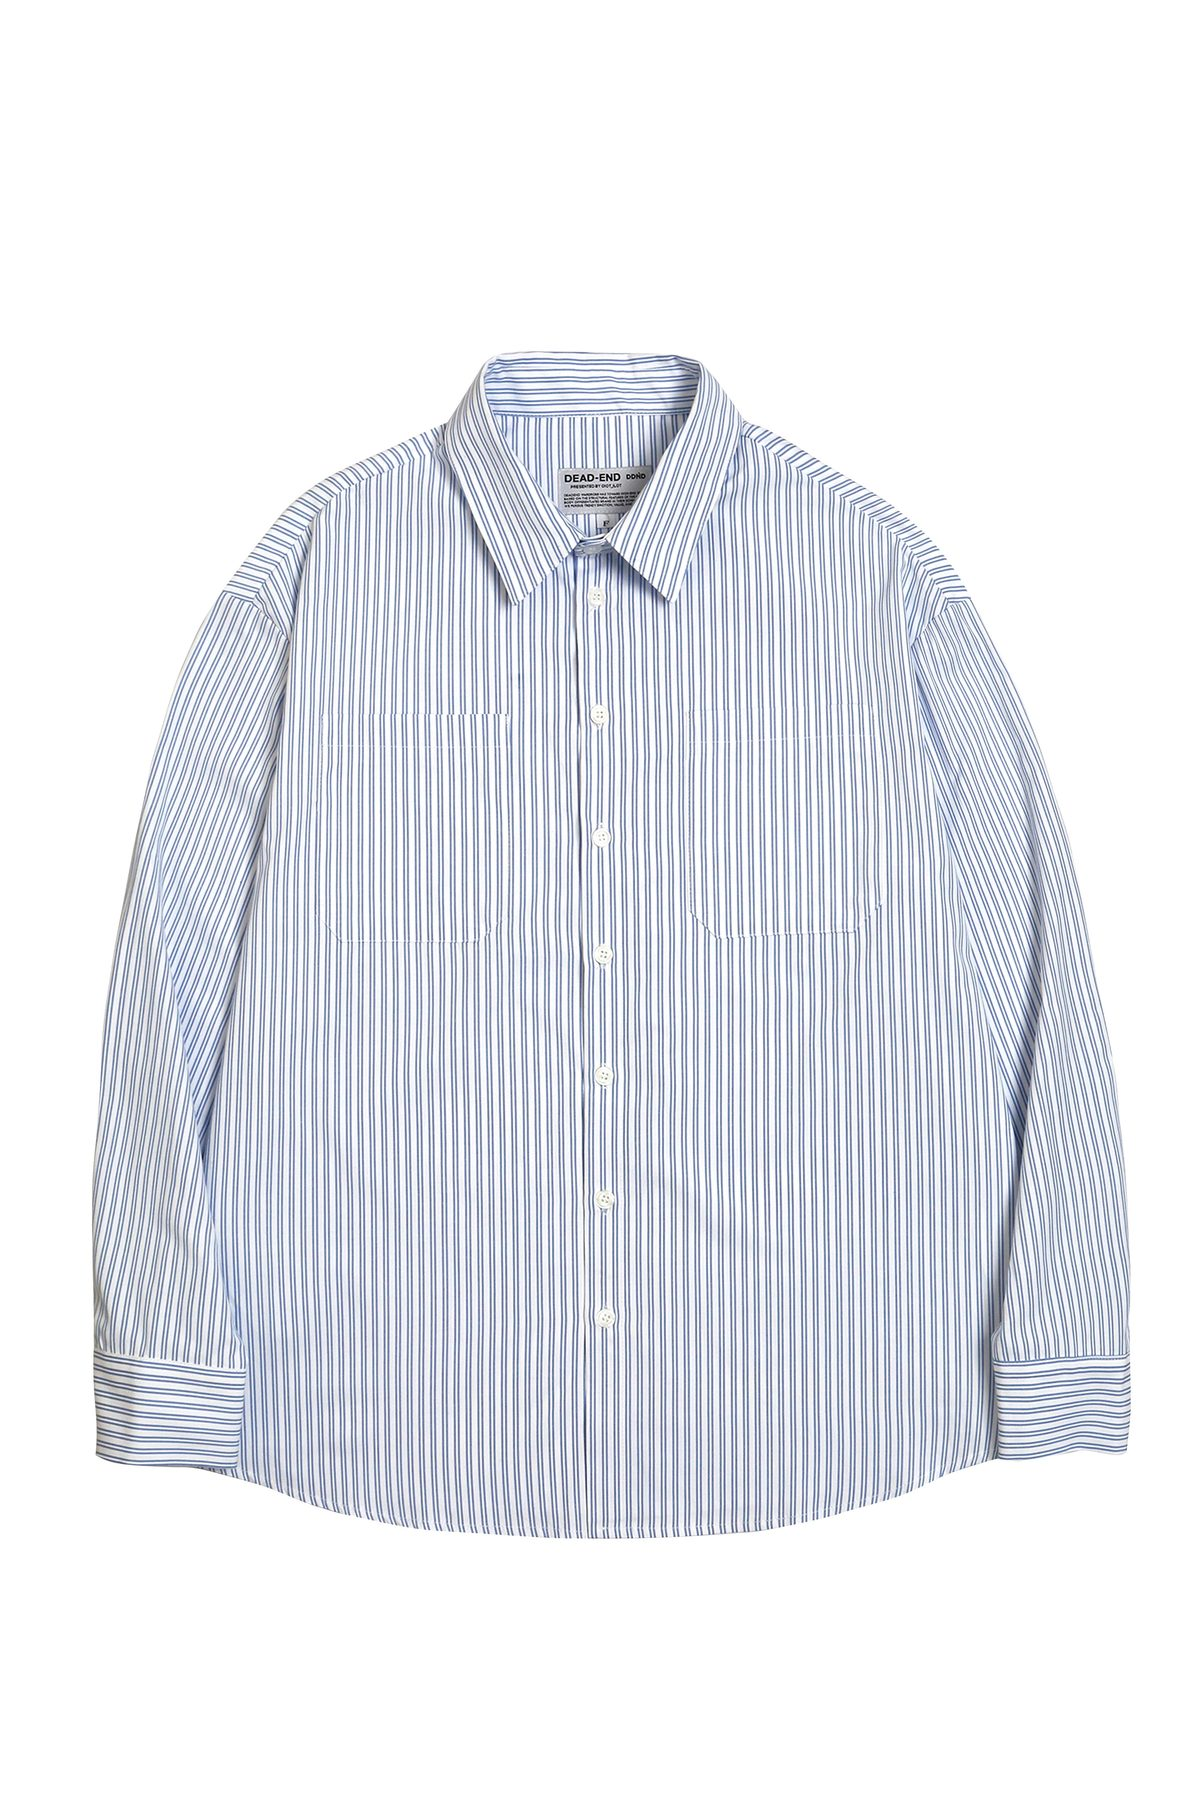 WHITE STRIPE QUOTE SHIRTS